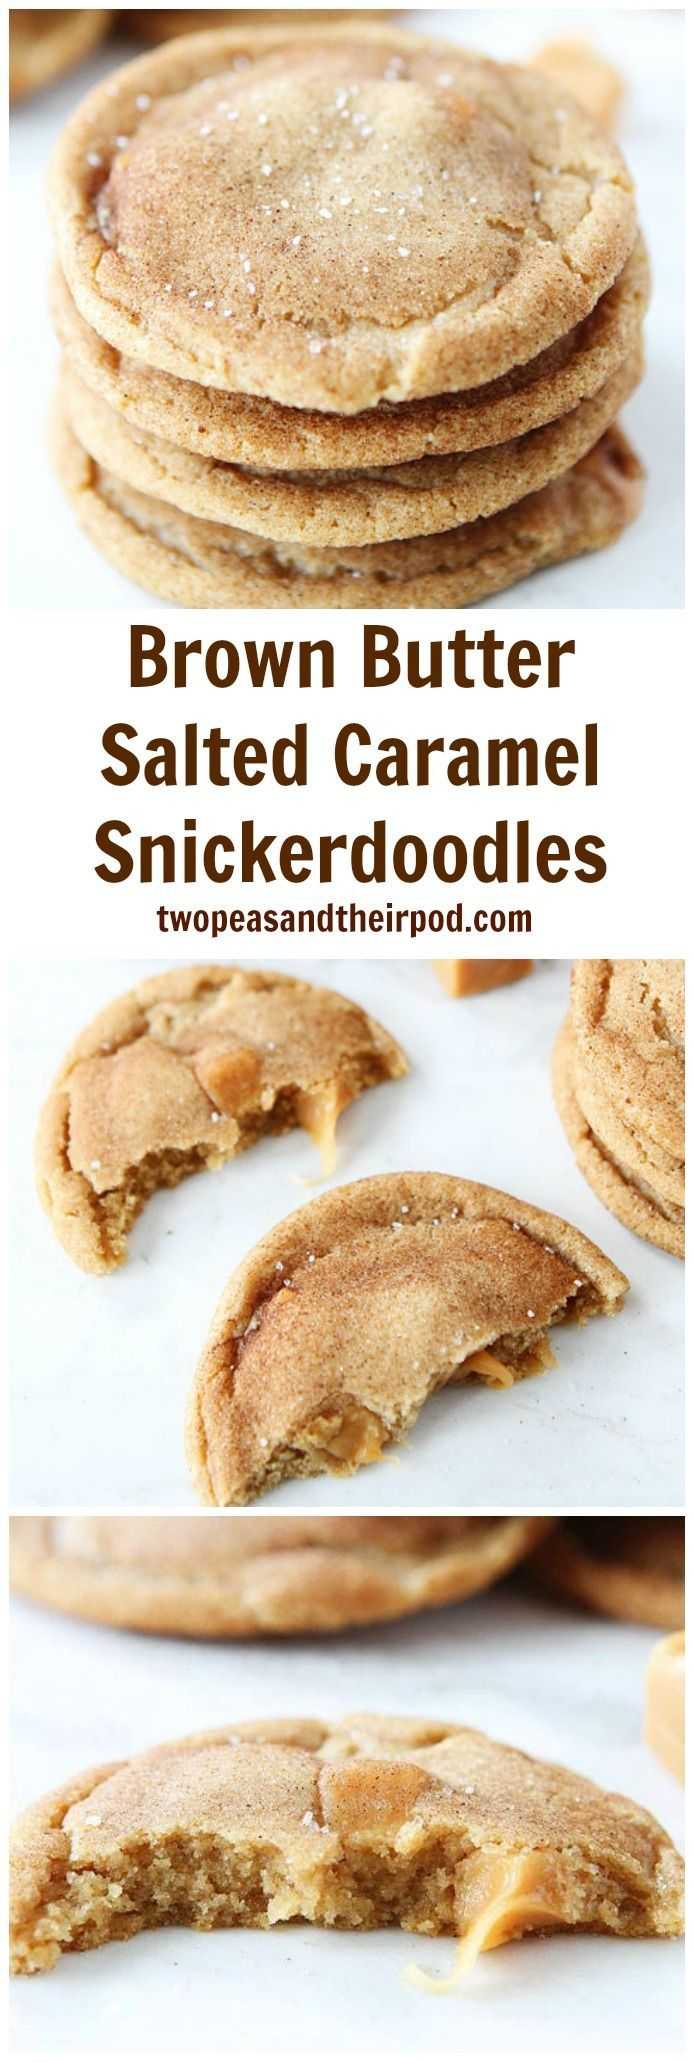 Brown Butter Salted Caramel Snickerdoodles Recipe. The BEST snickerdoodle recipe!